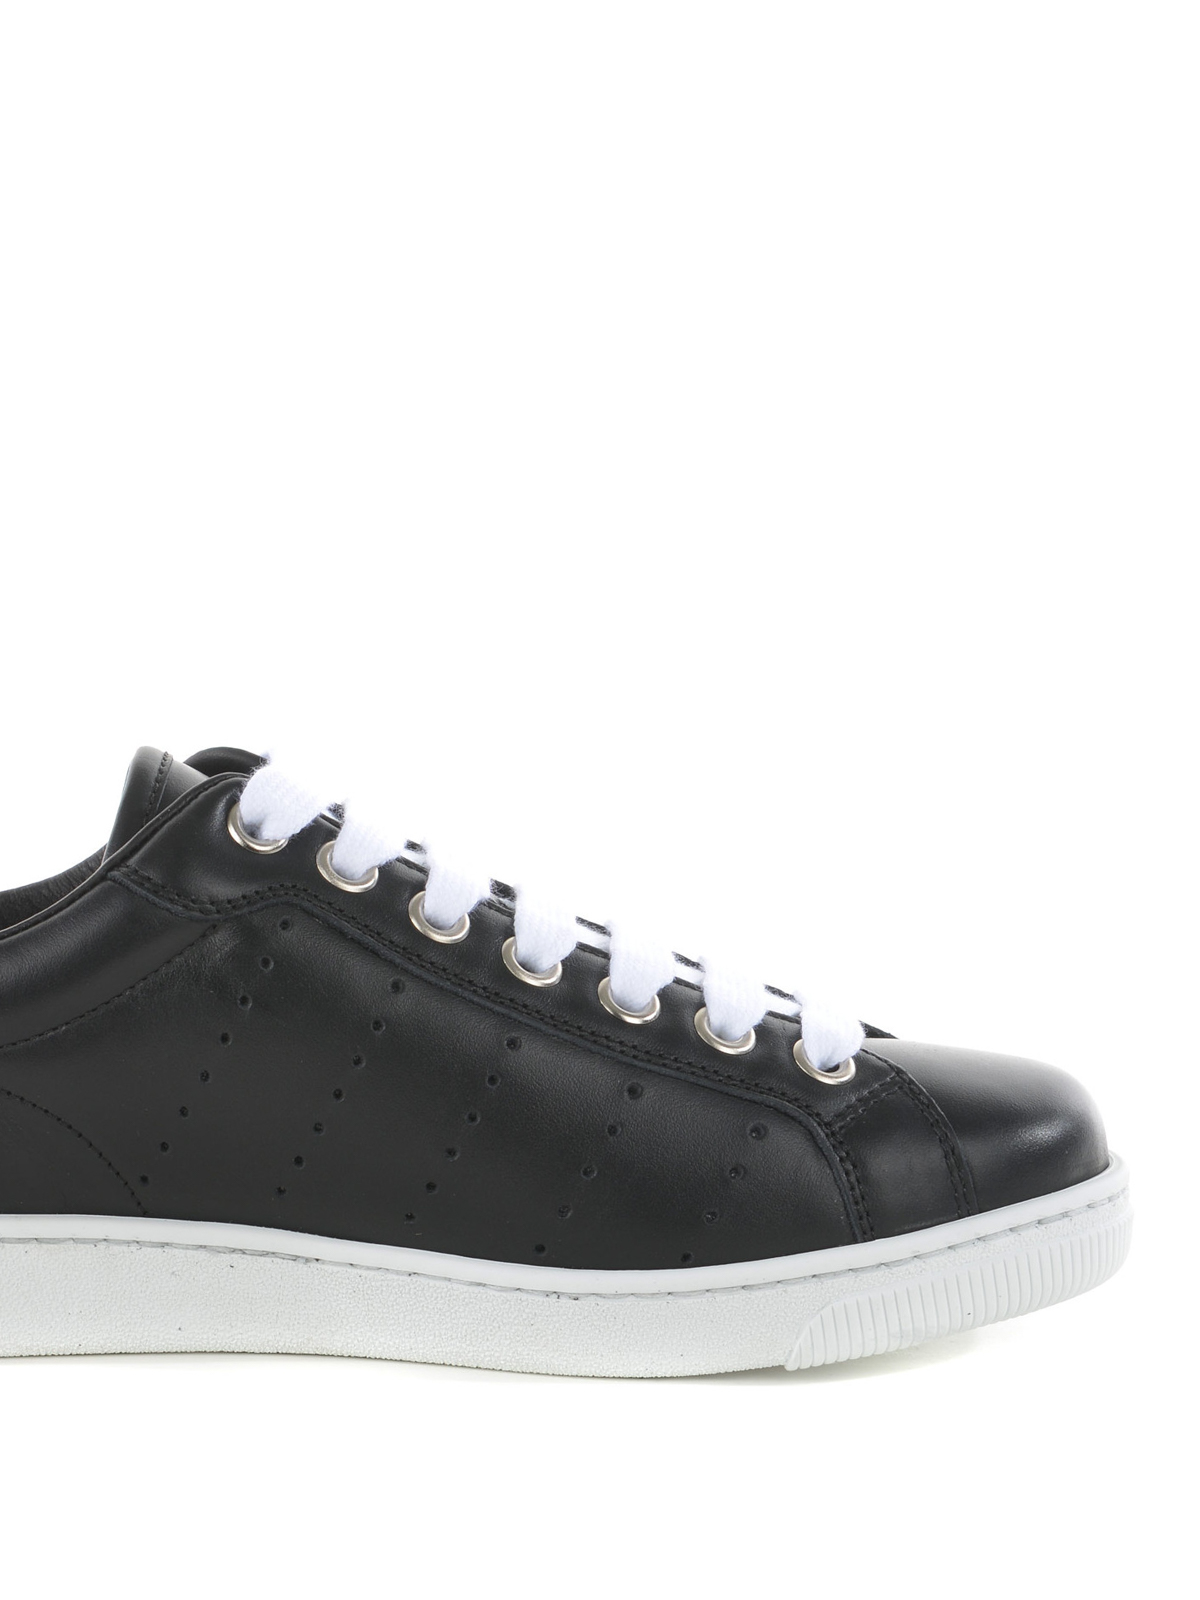 Dsquared2Leather Low Trainers eD16L65l